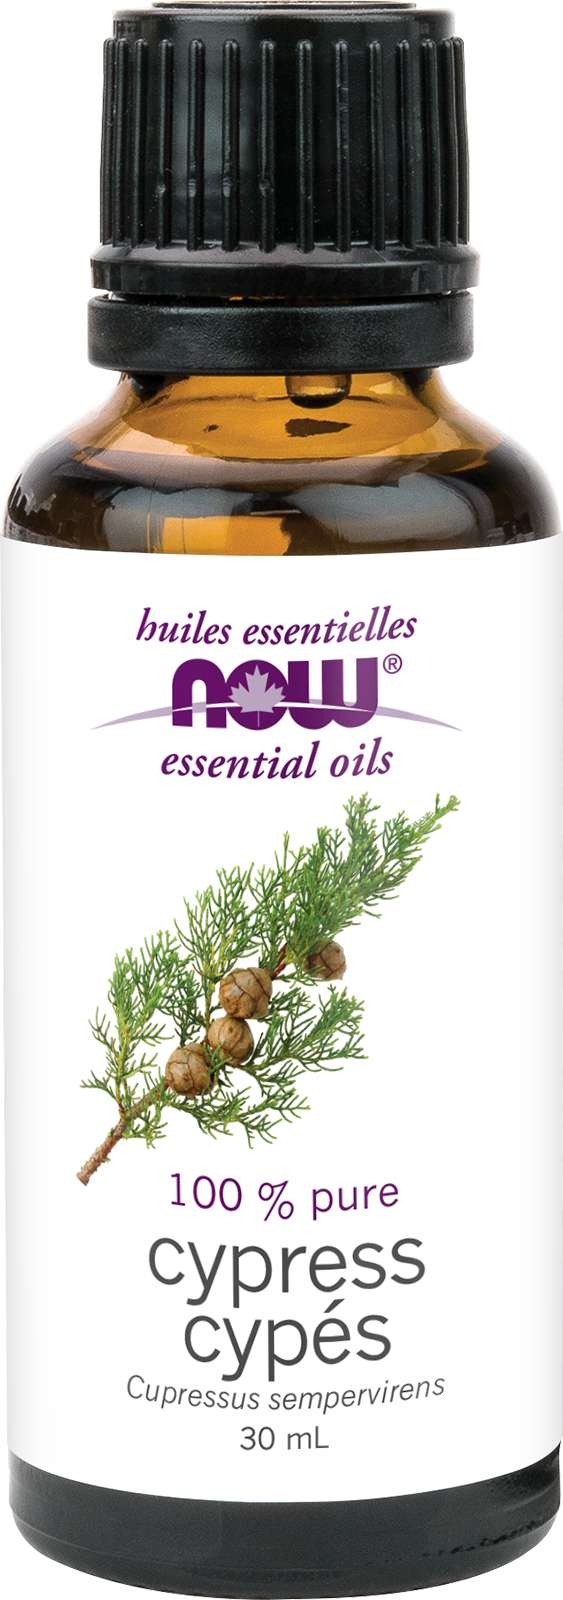 Cypress Oil (Cupressus sempervirens) 30mL